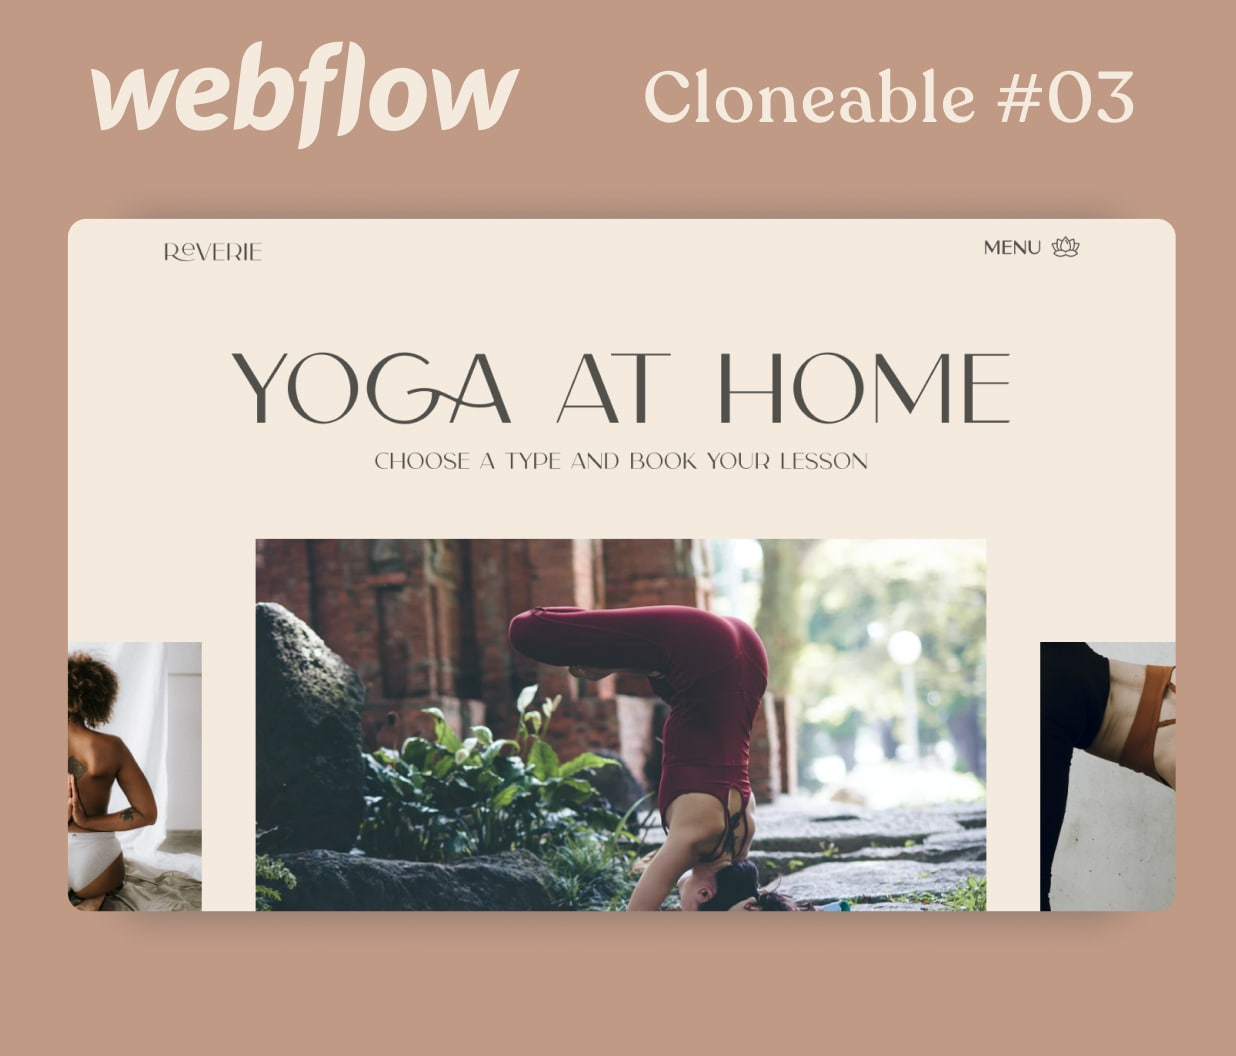 Webpage mockup of yoga at home courses